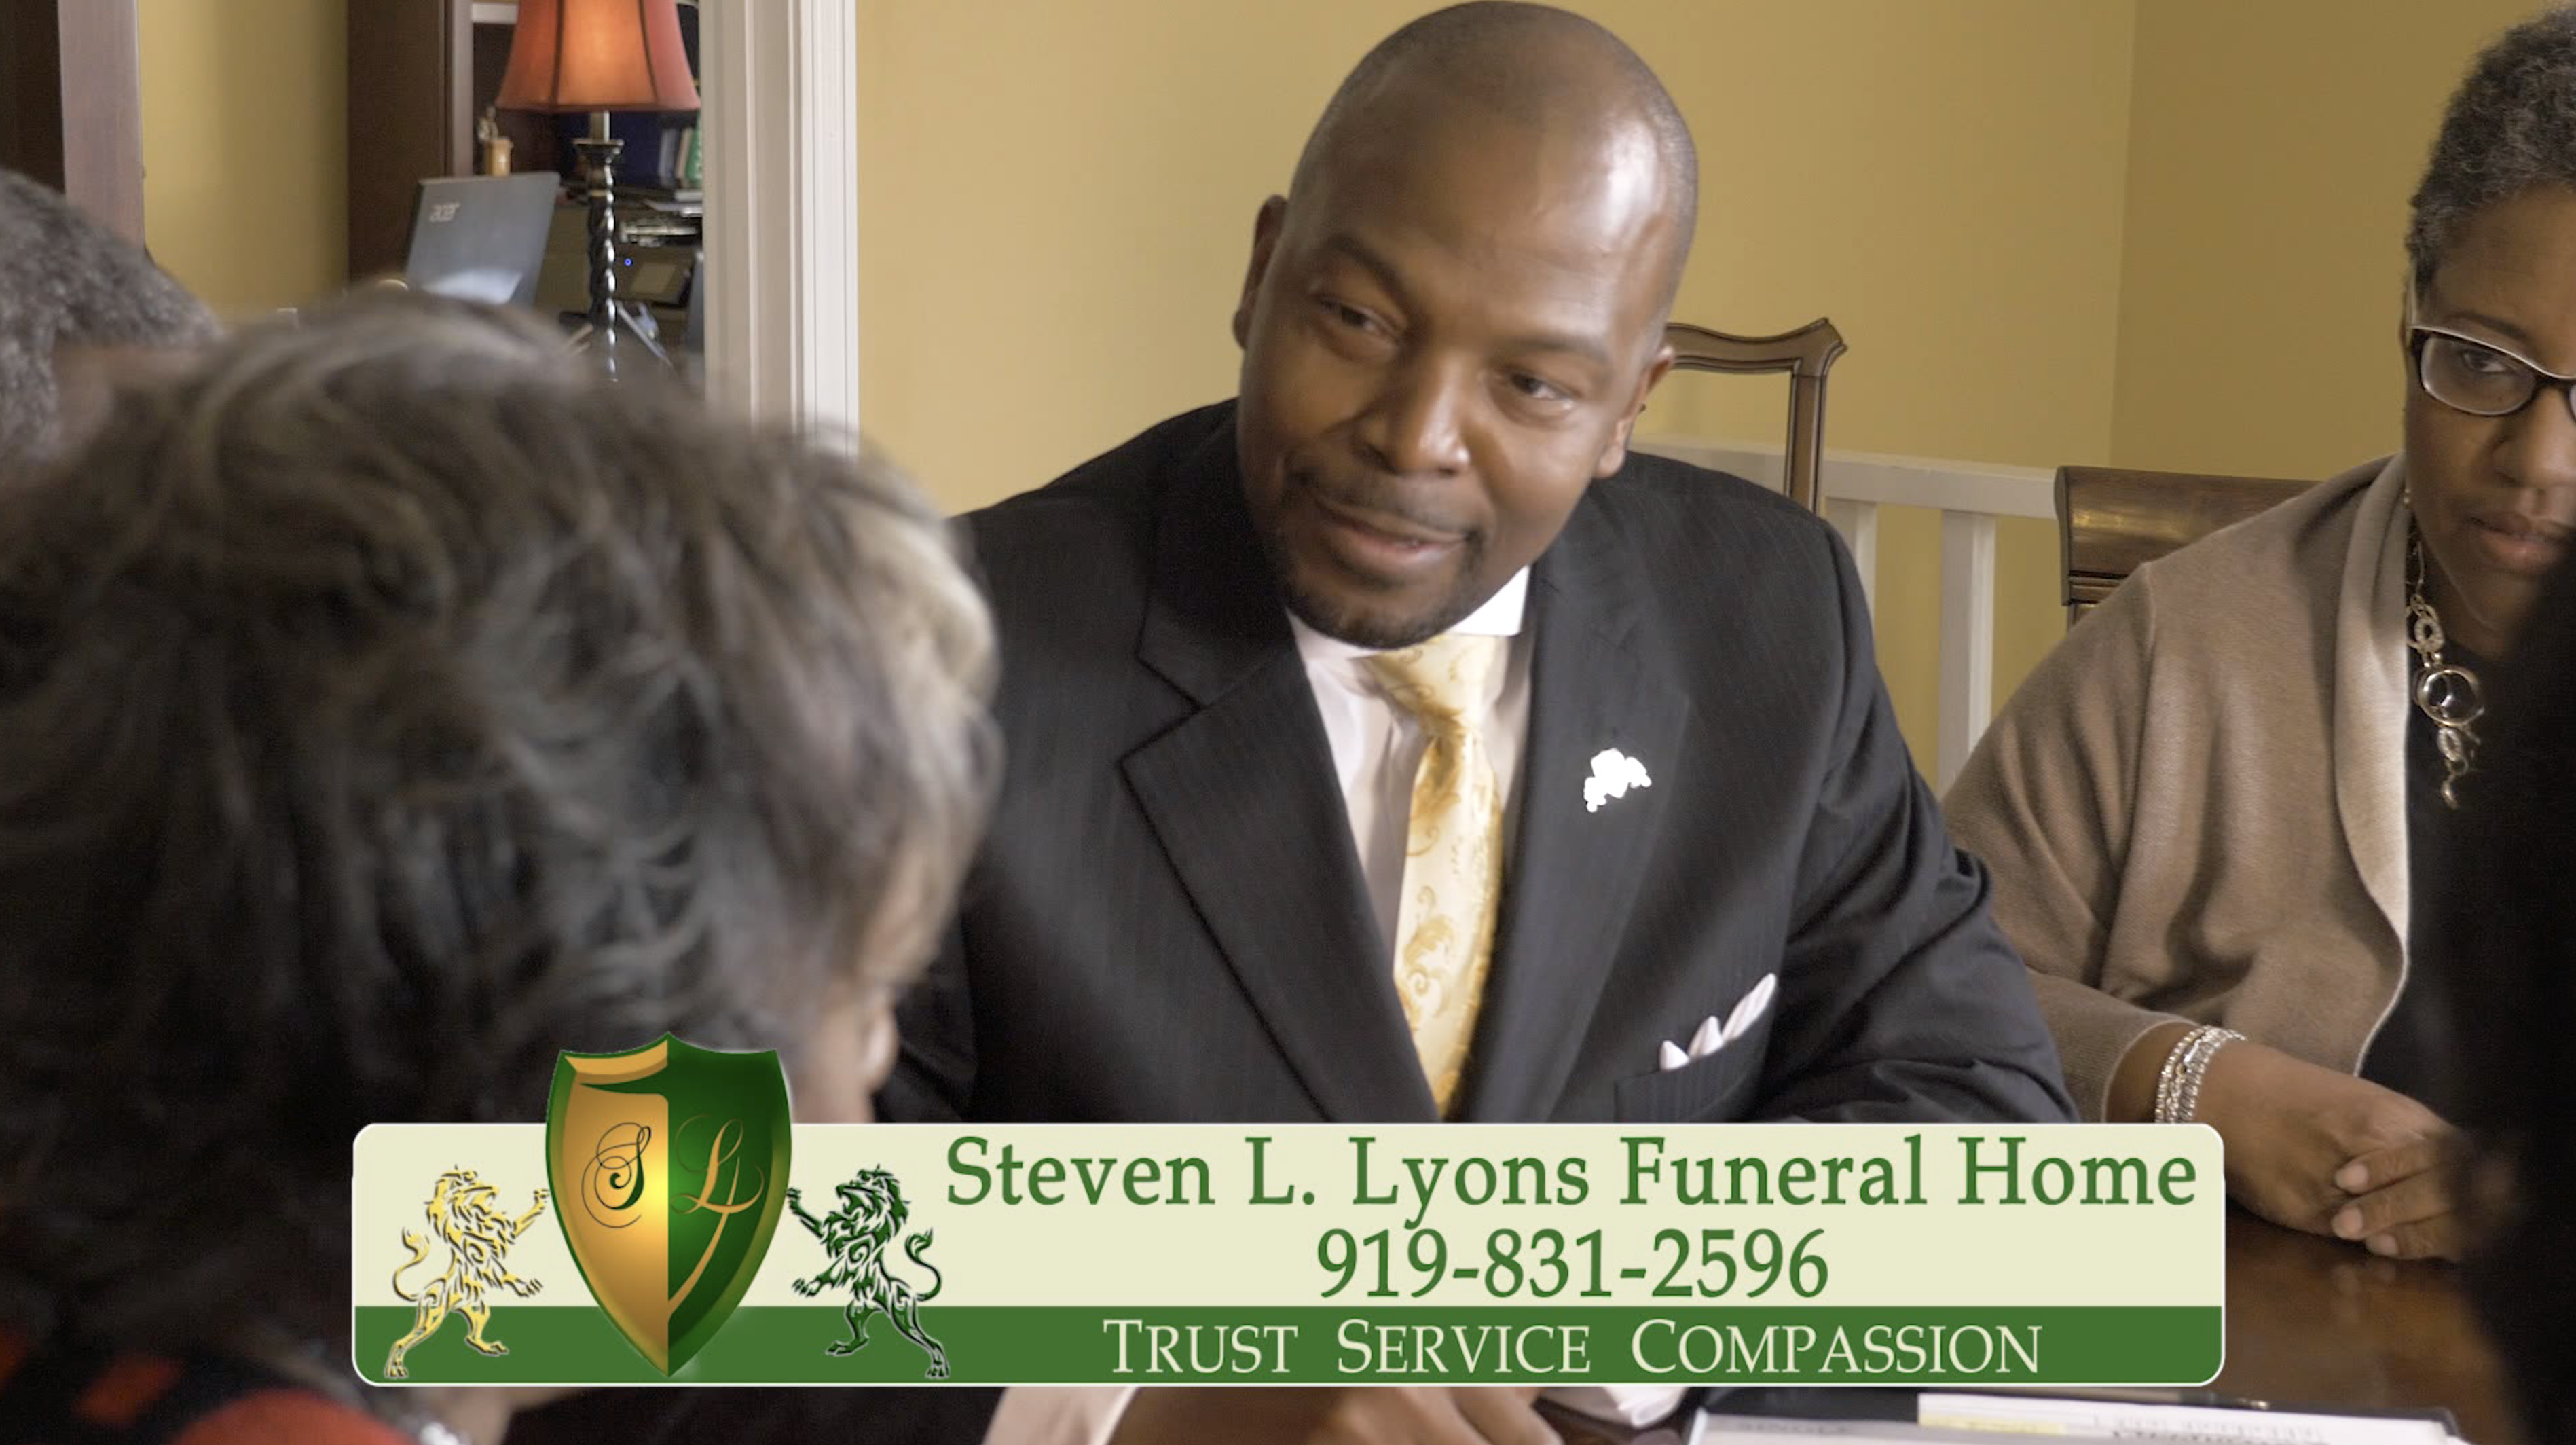 Steven L Lyons Funeral Home | Raleigh NC funeral home and